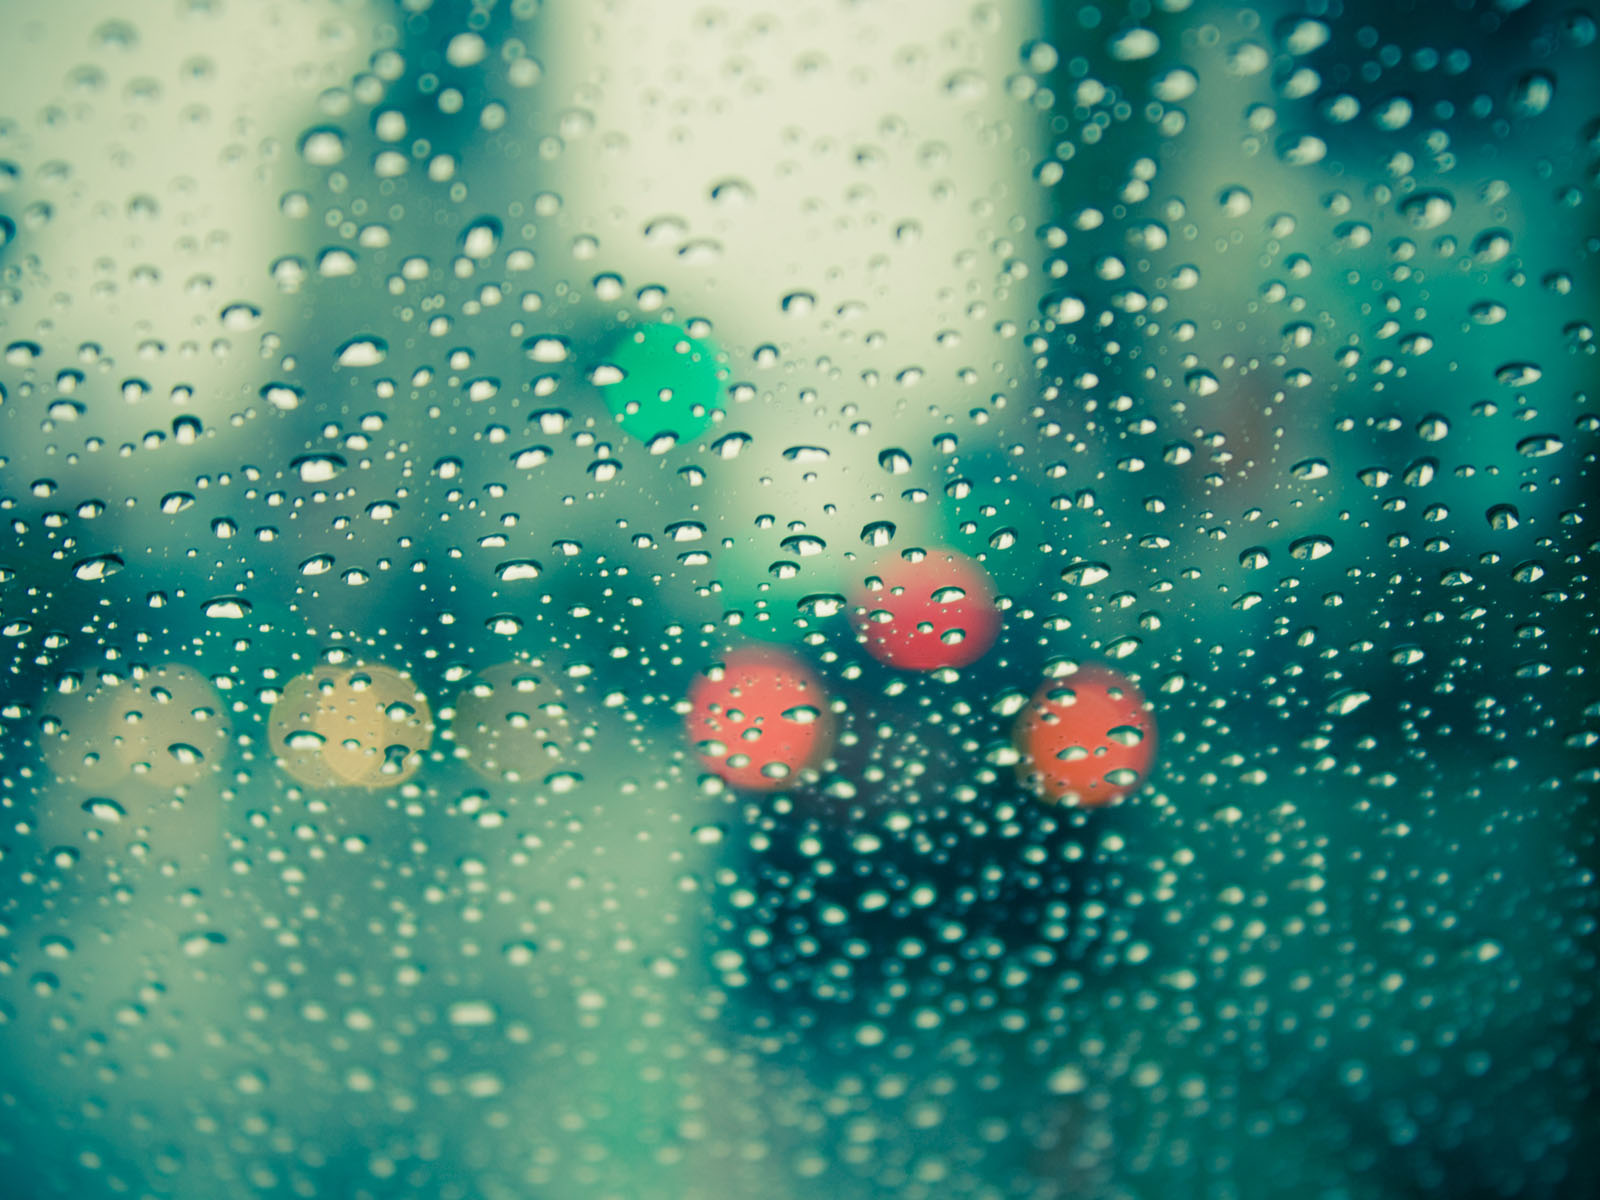 Wallpapers rain drops on glass wallpapers for Window 3d wallpaper